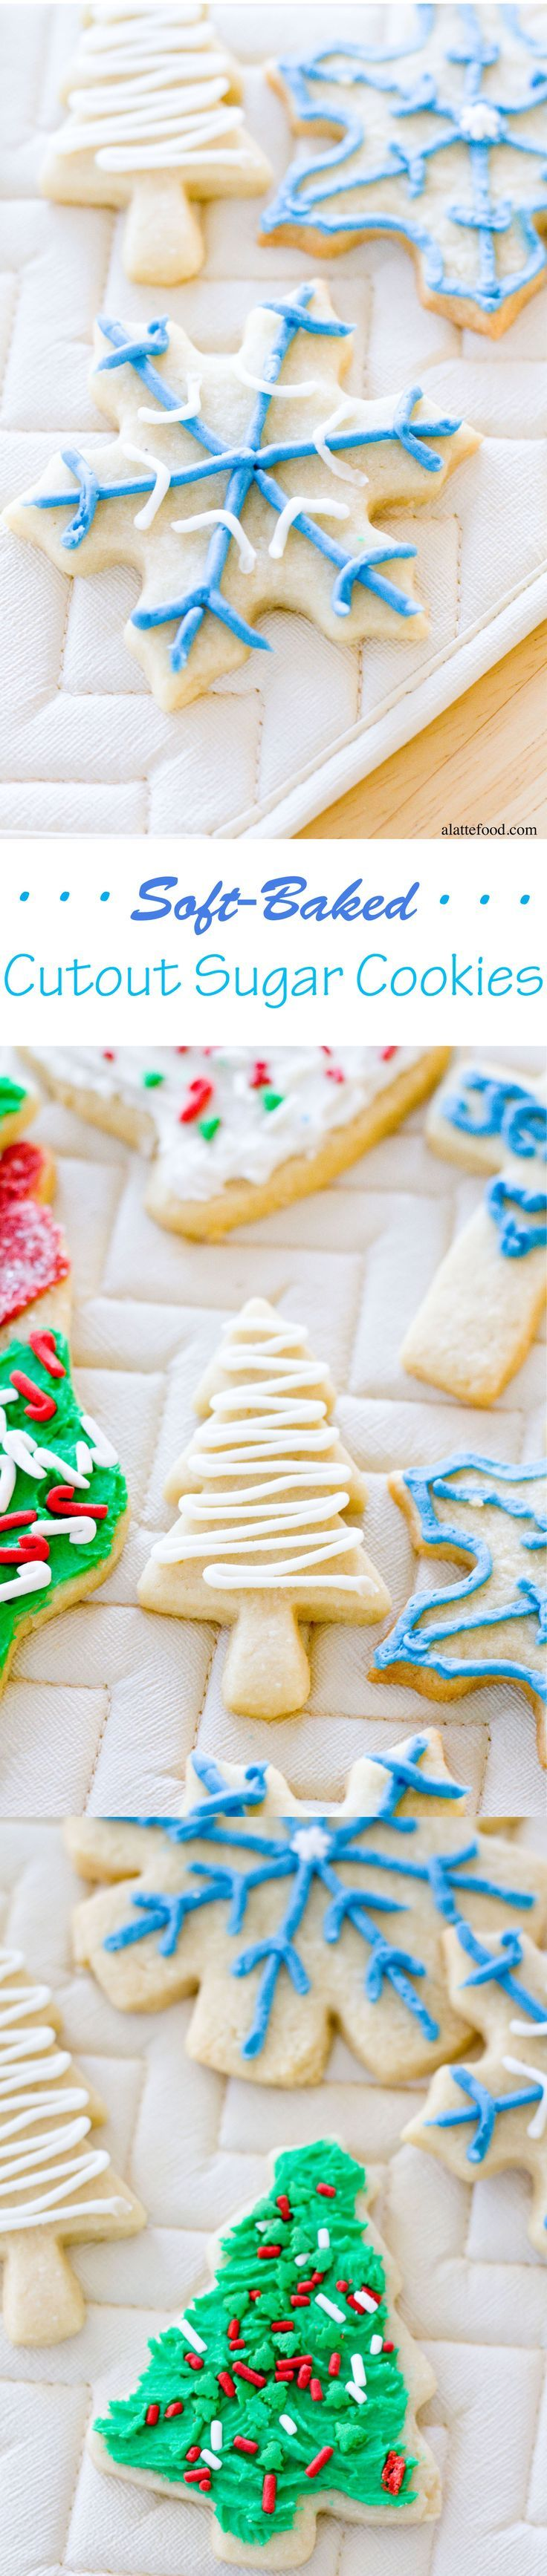 Soft-Baked Cutout Sugar Cookies | These are the perfect cookies!